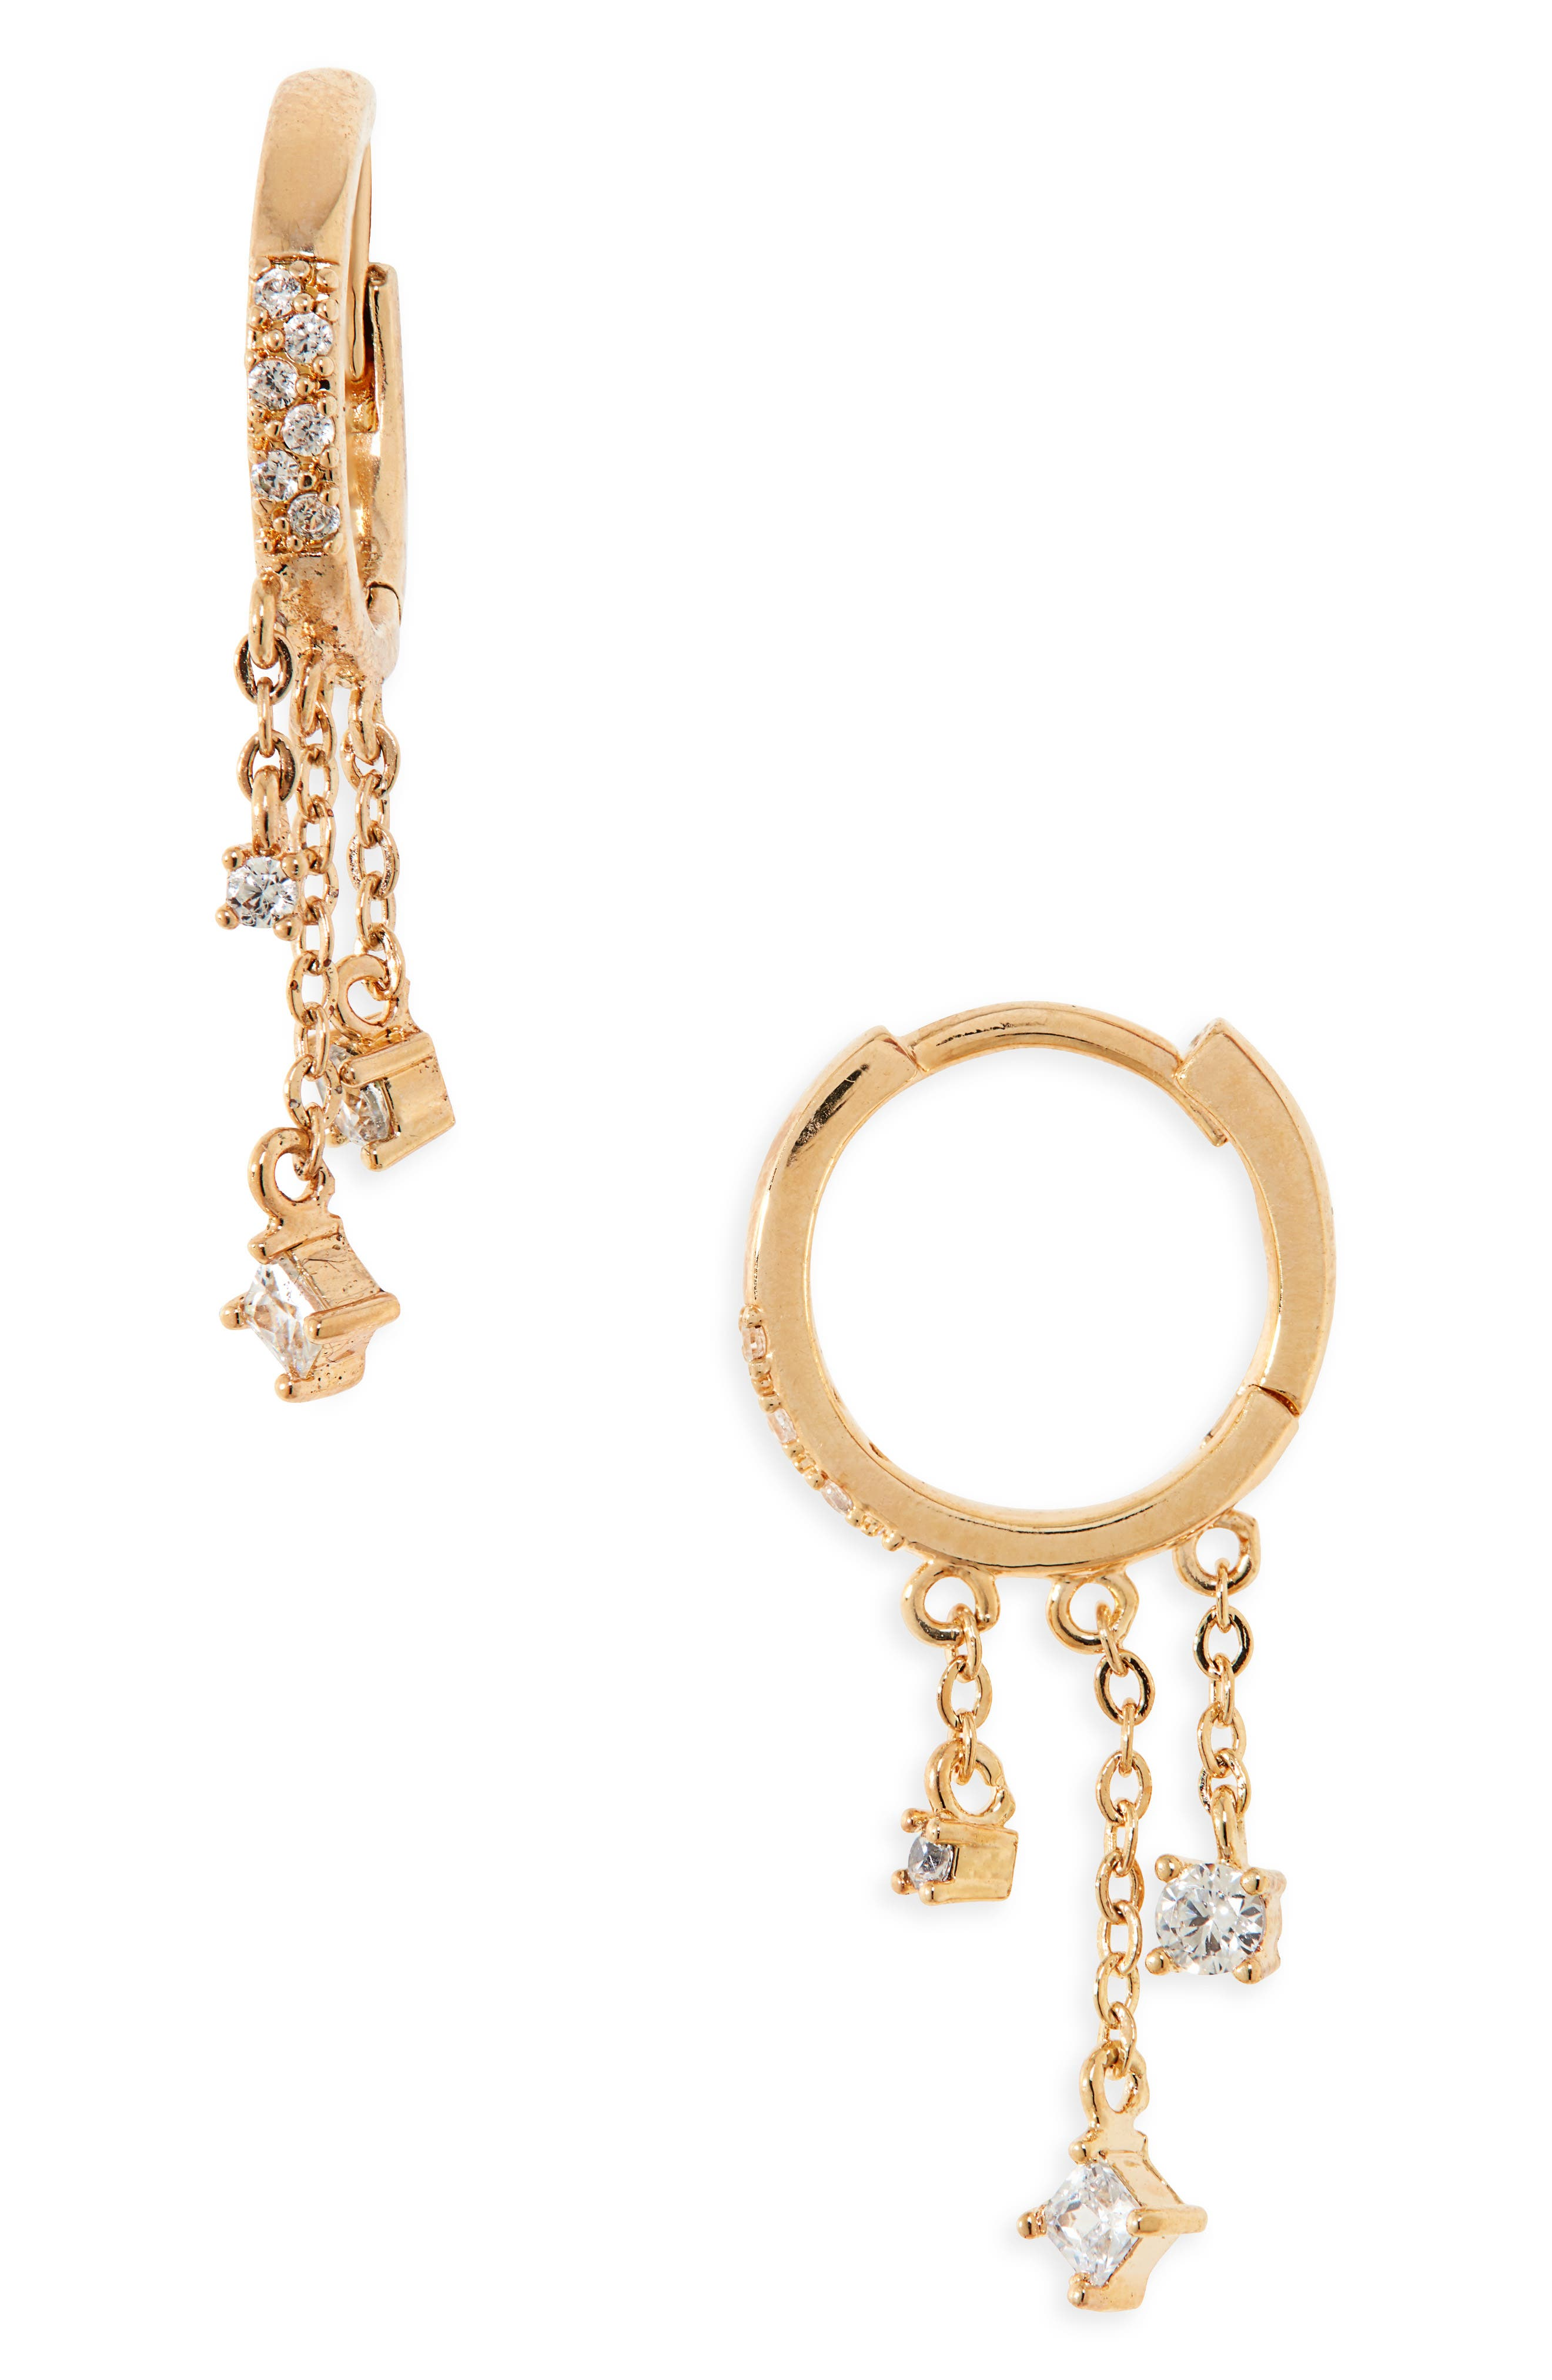 Chain fringe tipped with dainty sparkling charms dangles beneath pave huggie hoops elegant enough for a night out yet simple enough for everyday wear. Style Name: Nordstrom Cubic Zirconia Fringe Huggie Hoop Earrings. Style Number: 6016823. Available in stores.